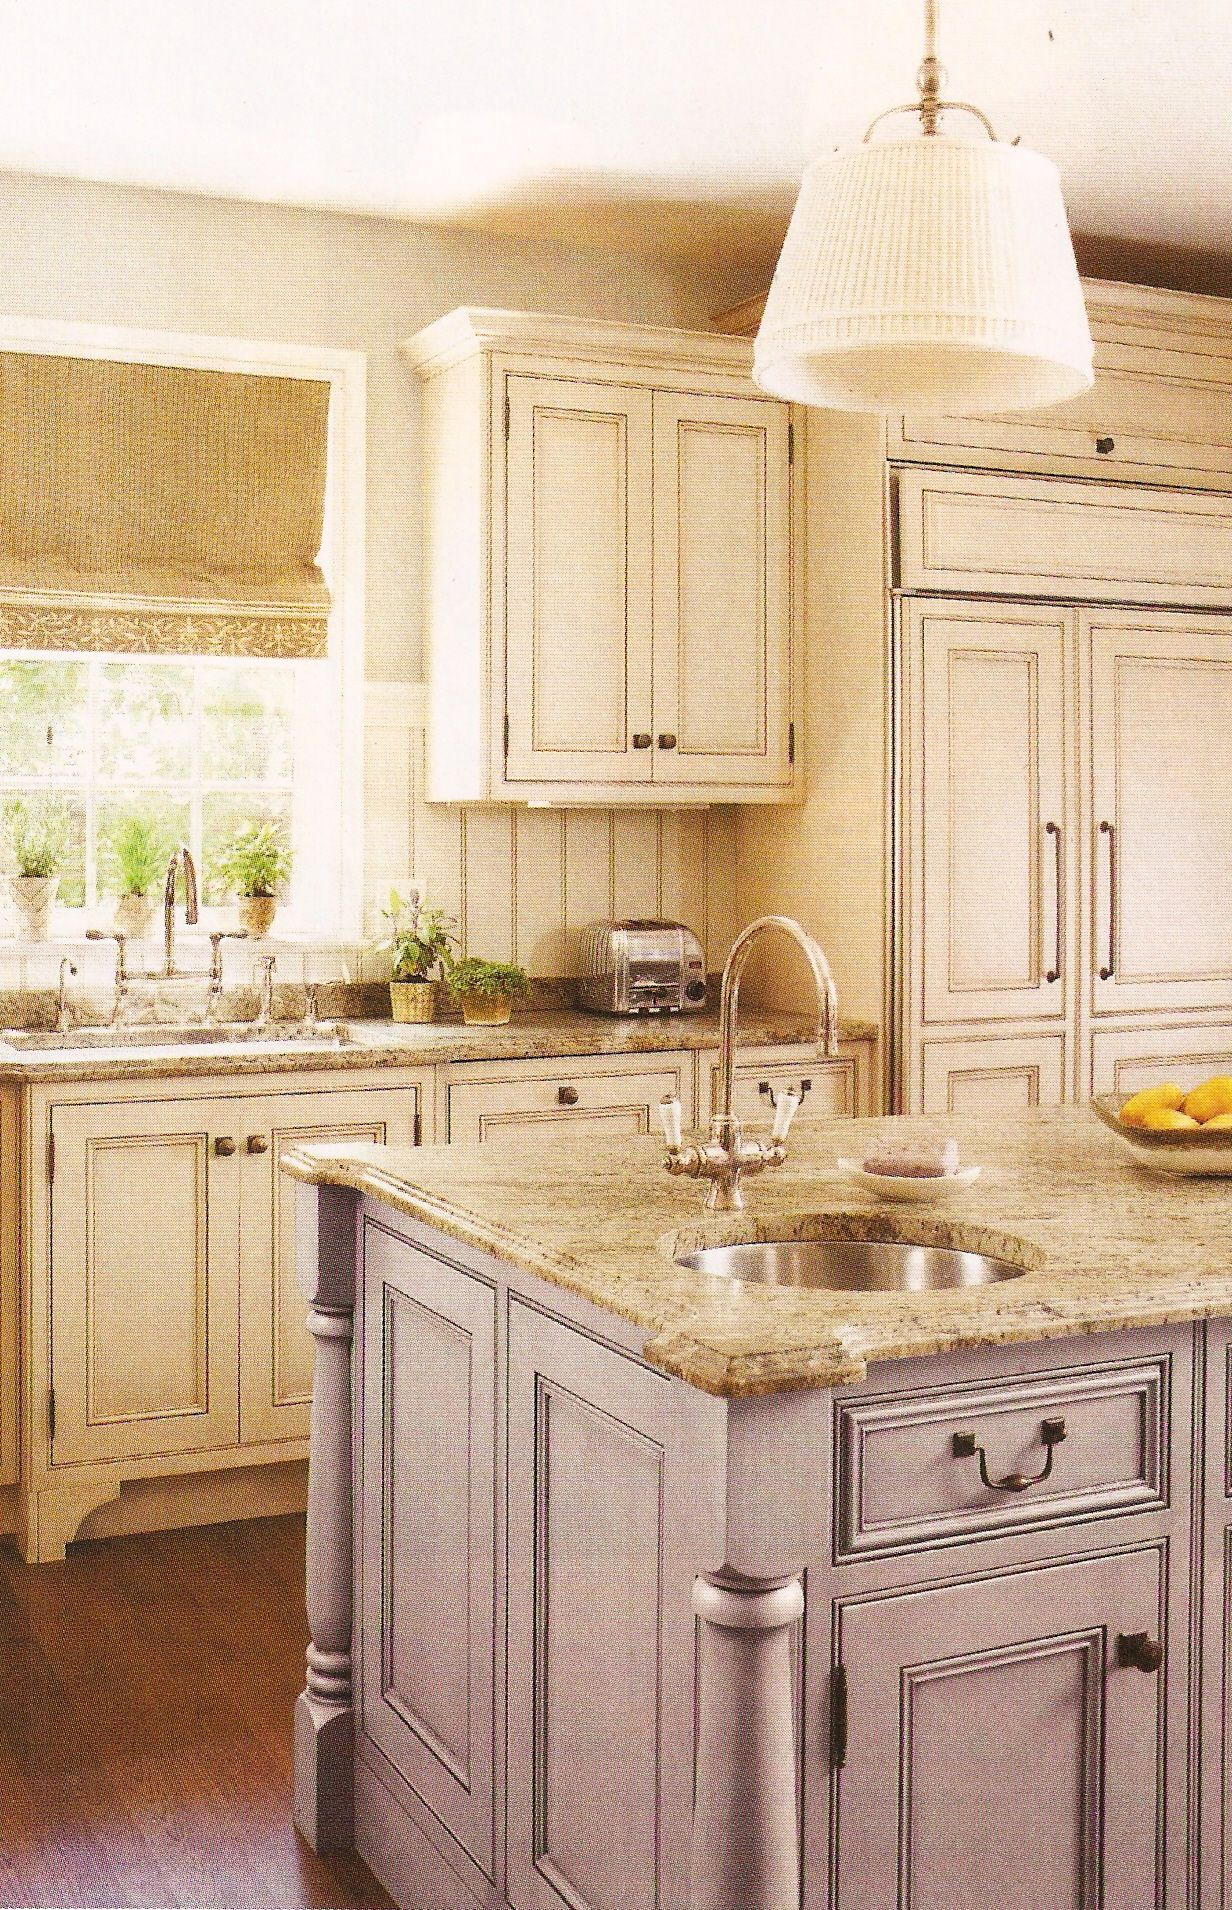 Best Kitchen Lighting And End Cap For New Counter Antique 640 x 480